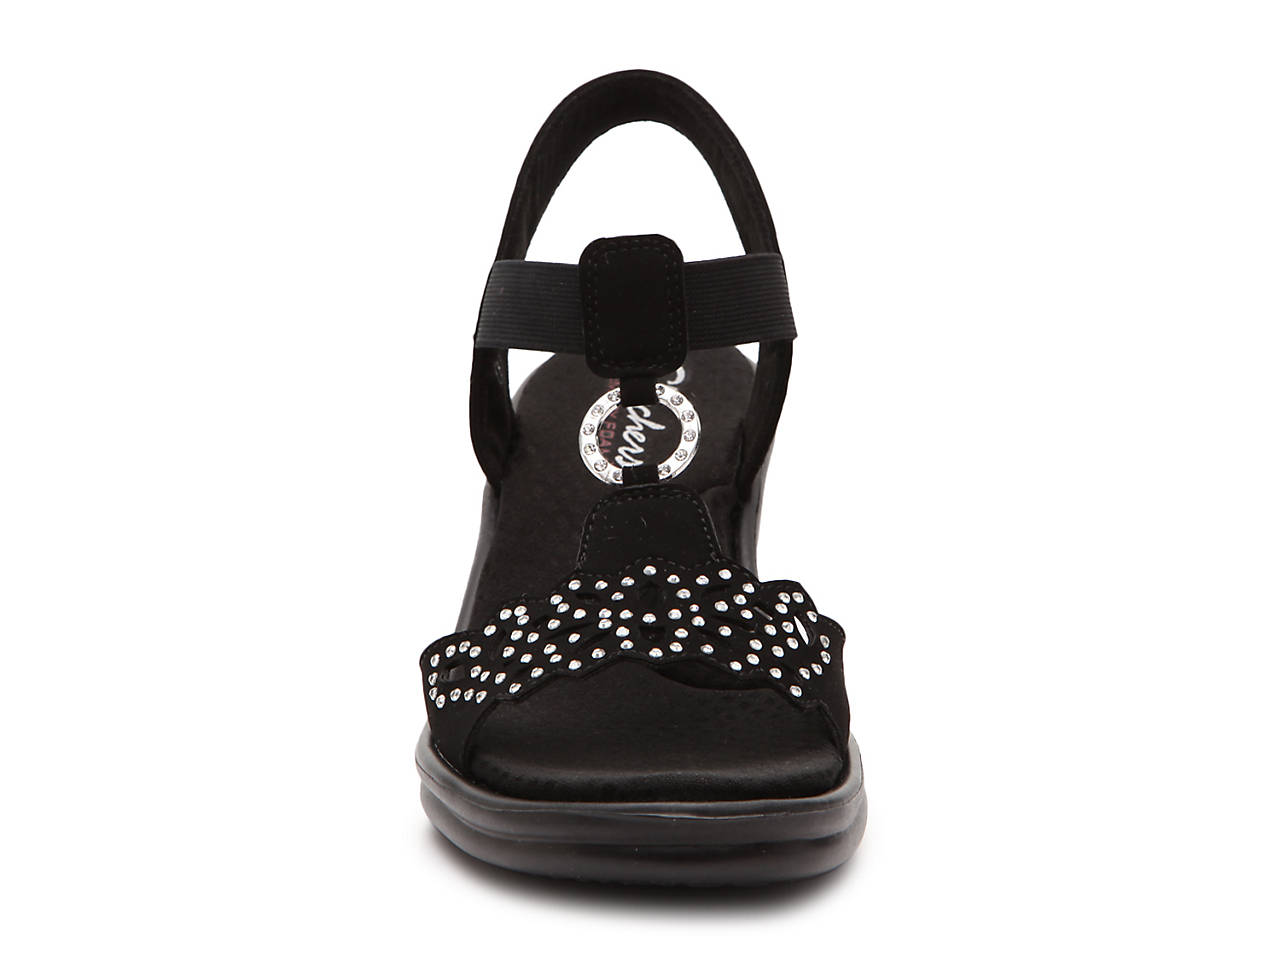 Cali Rumblers Queen B Wedge Sandal